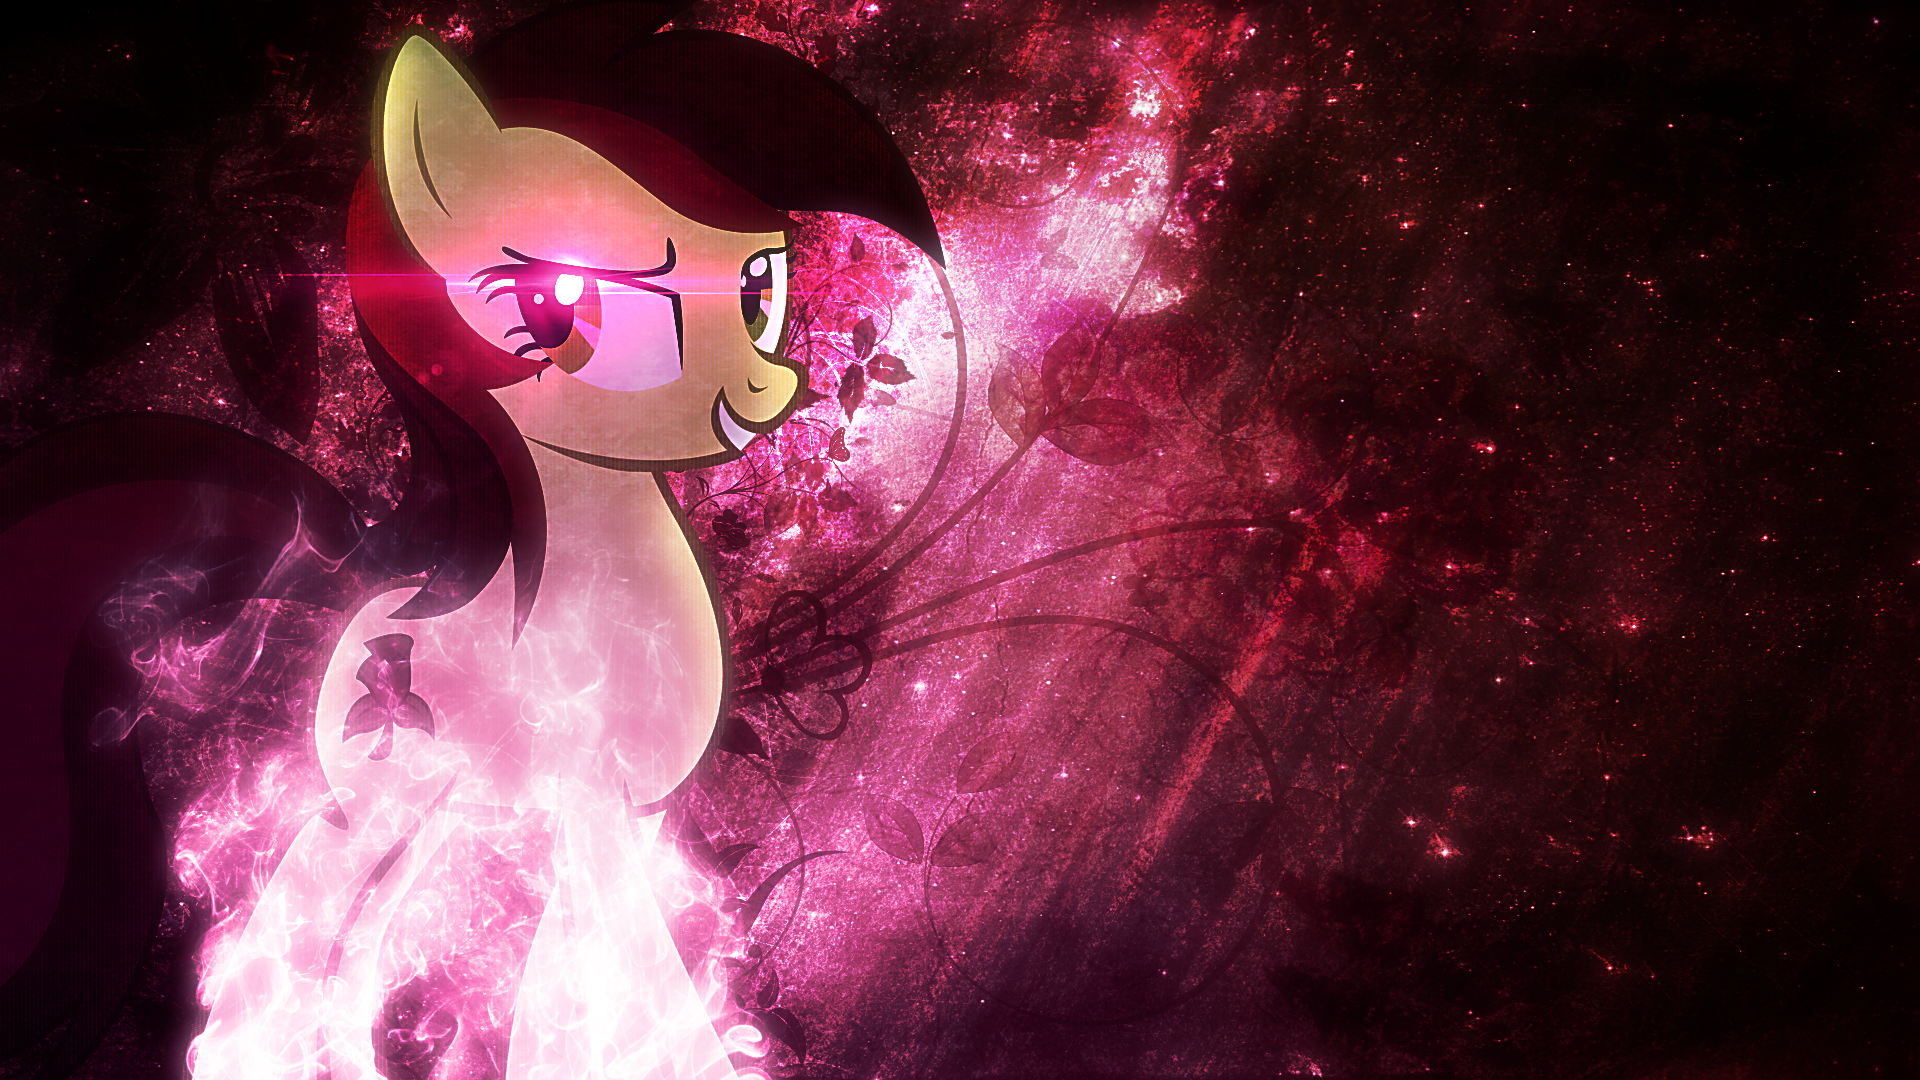 Roseluck Wallpaper by CptOfTheFriendship and Tzolkine